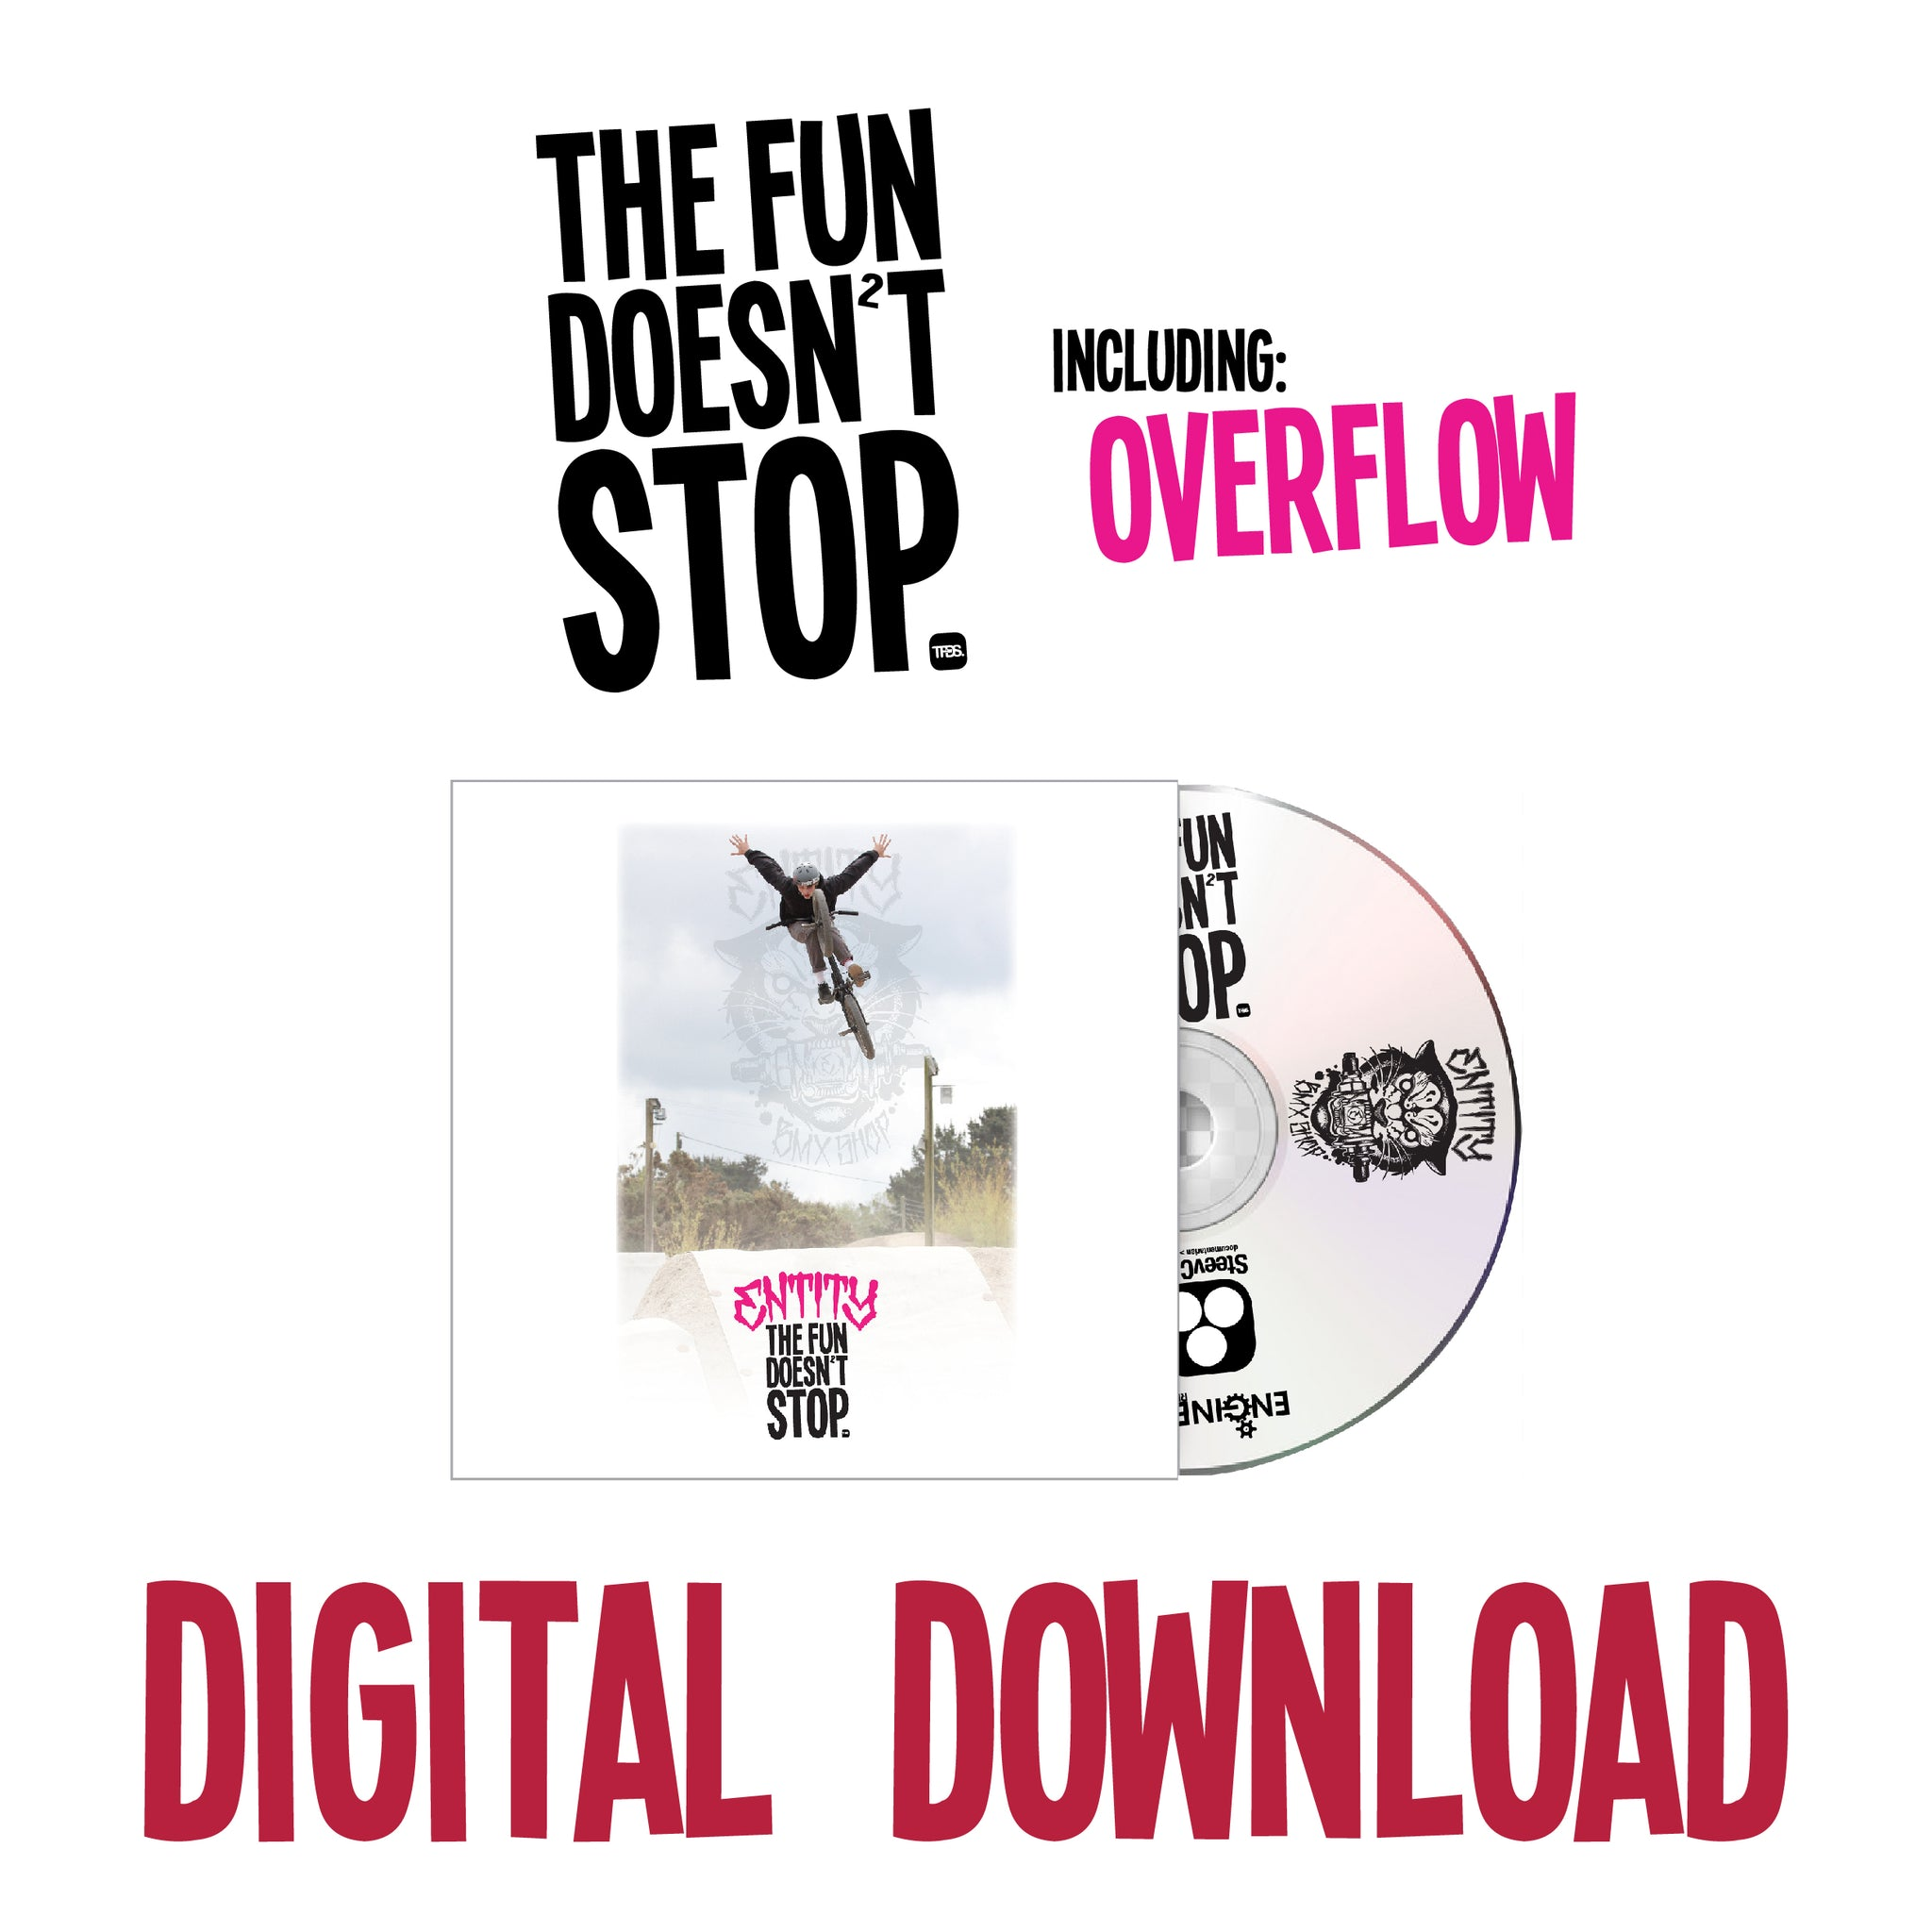 The Fun Doesn't Stop -  Digital Download